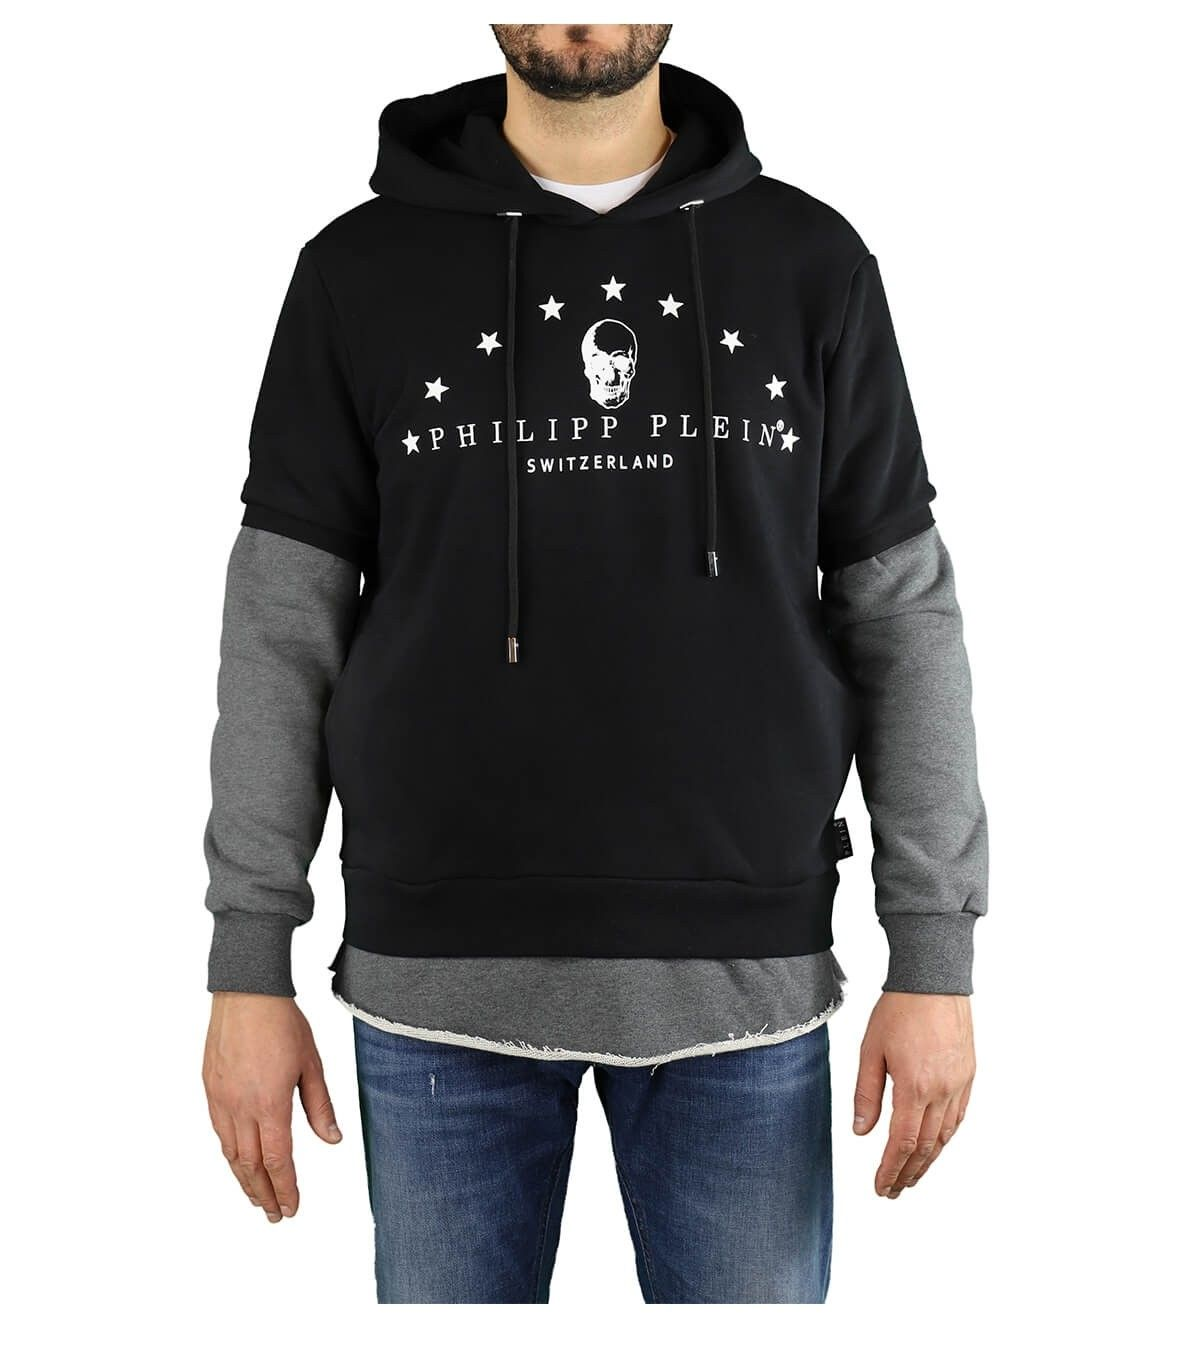 Philipp Plein PHILIPP PLEIN MEN'S BLACK COTTON SWEATSHIRT